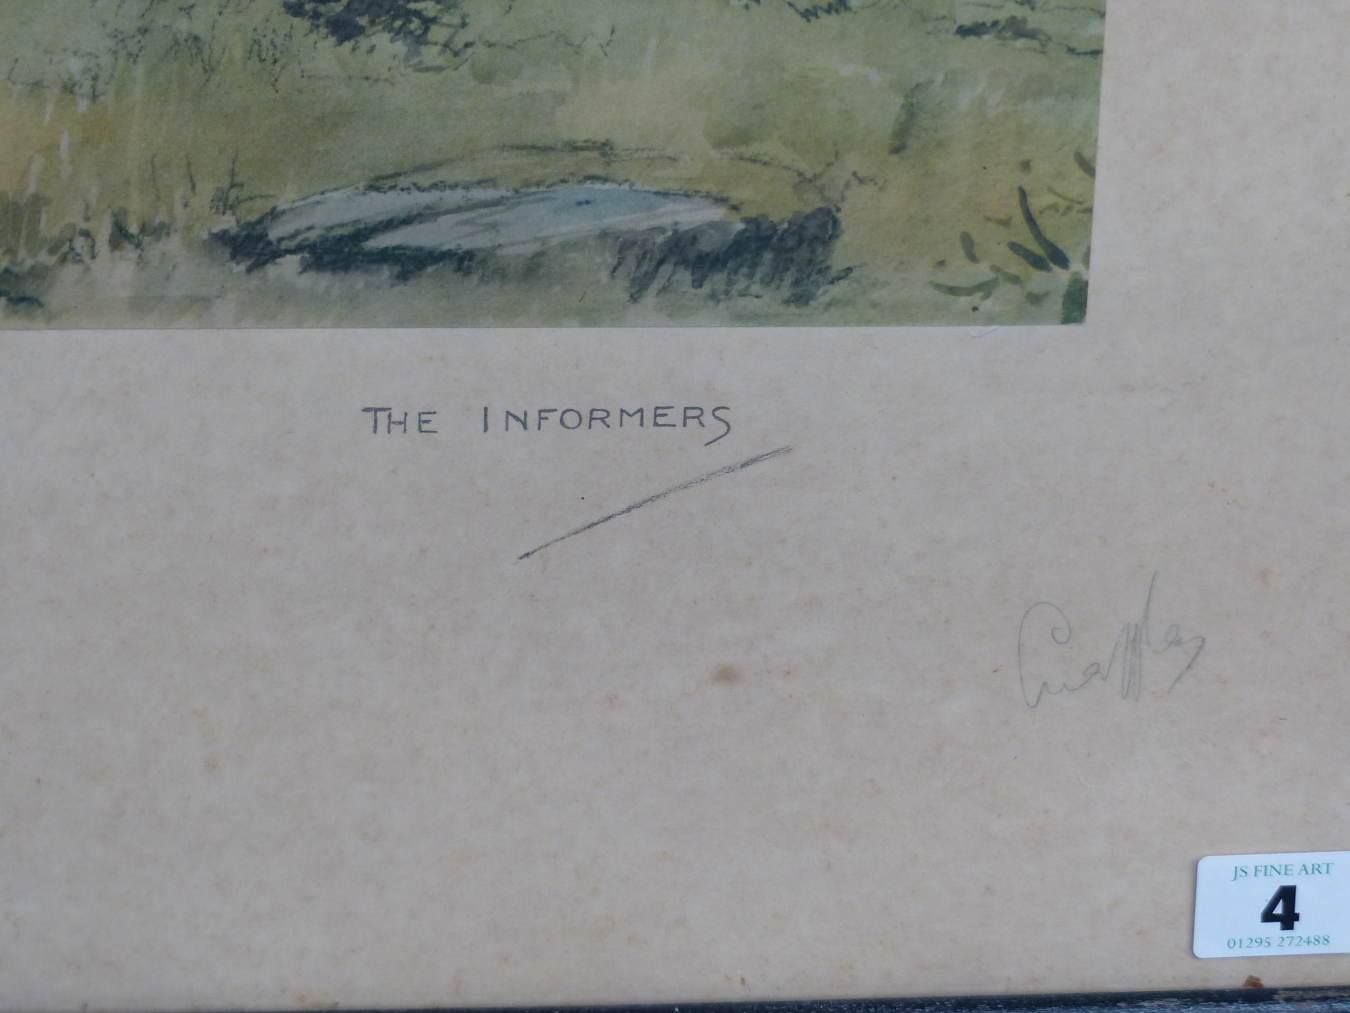 SNAFFLES, CHARLES JOHNSON PAYNE (1884-1967) THE INFORMERS. PENCIL SIGNED COLOUR PRINT. 46 x 56cms - Image 5 of 5